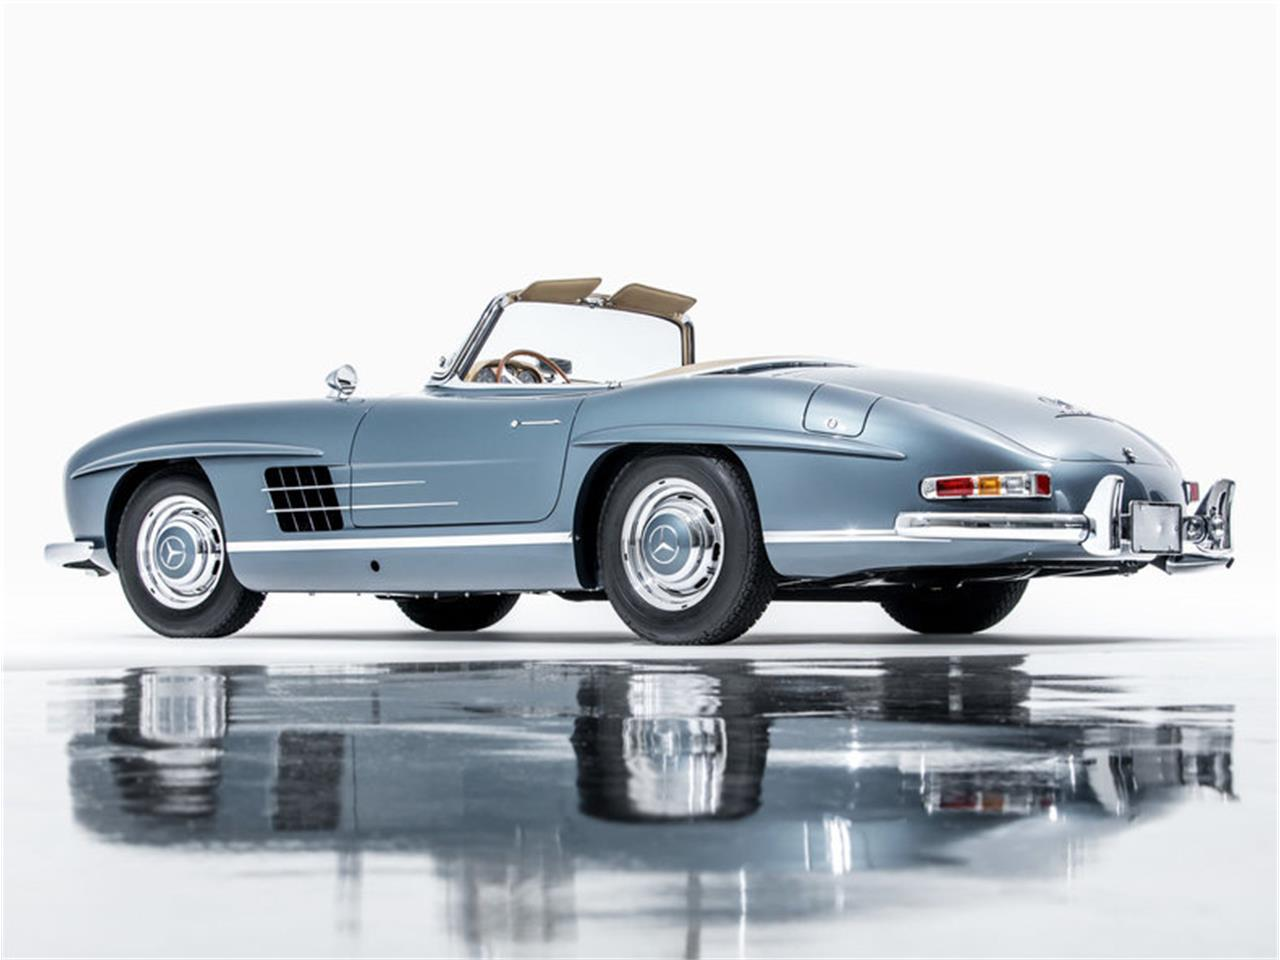 Large Picture of 1958 Mercedes-Benz 300SL located in California Auction Vehicle Offered by Morris and Welford - MZA8